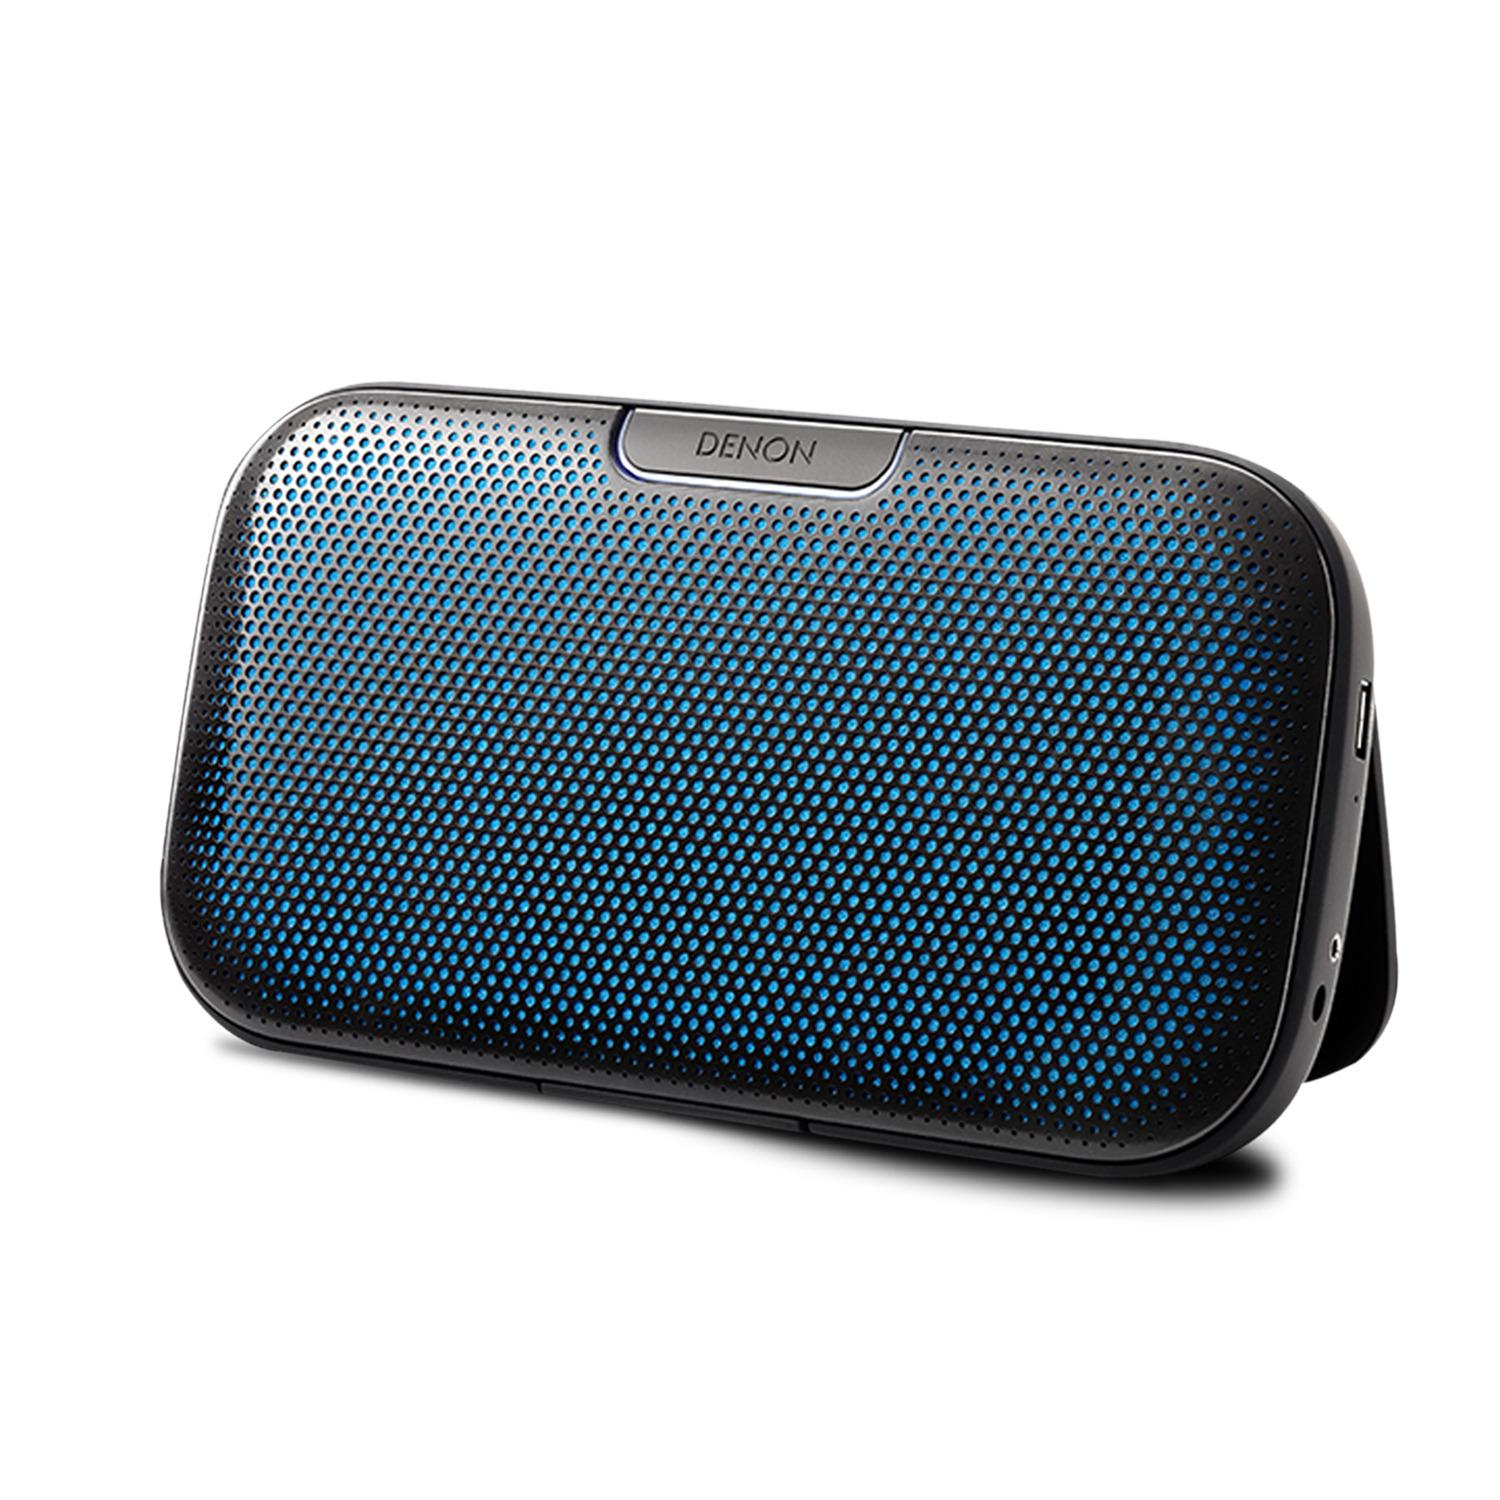 Sale Denon Envaya Dsb 200Bk Portable Bluetooth Audio System Black On Singapore